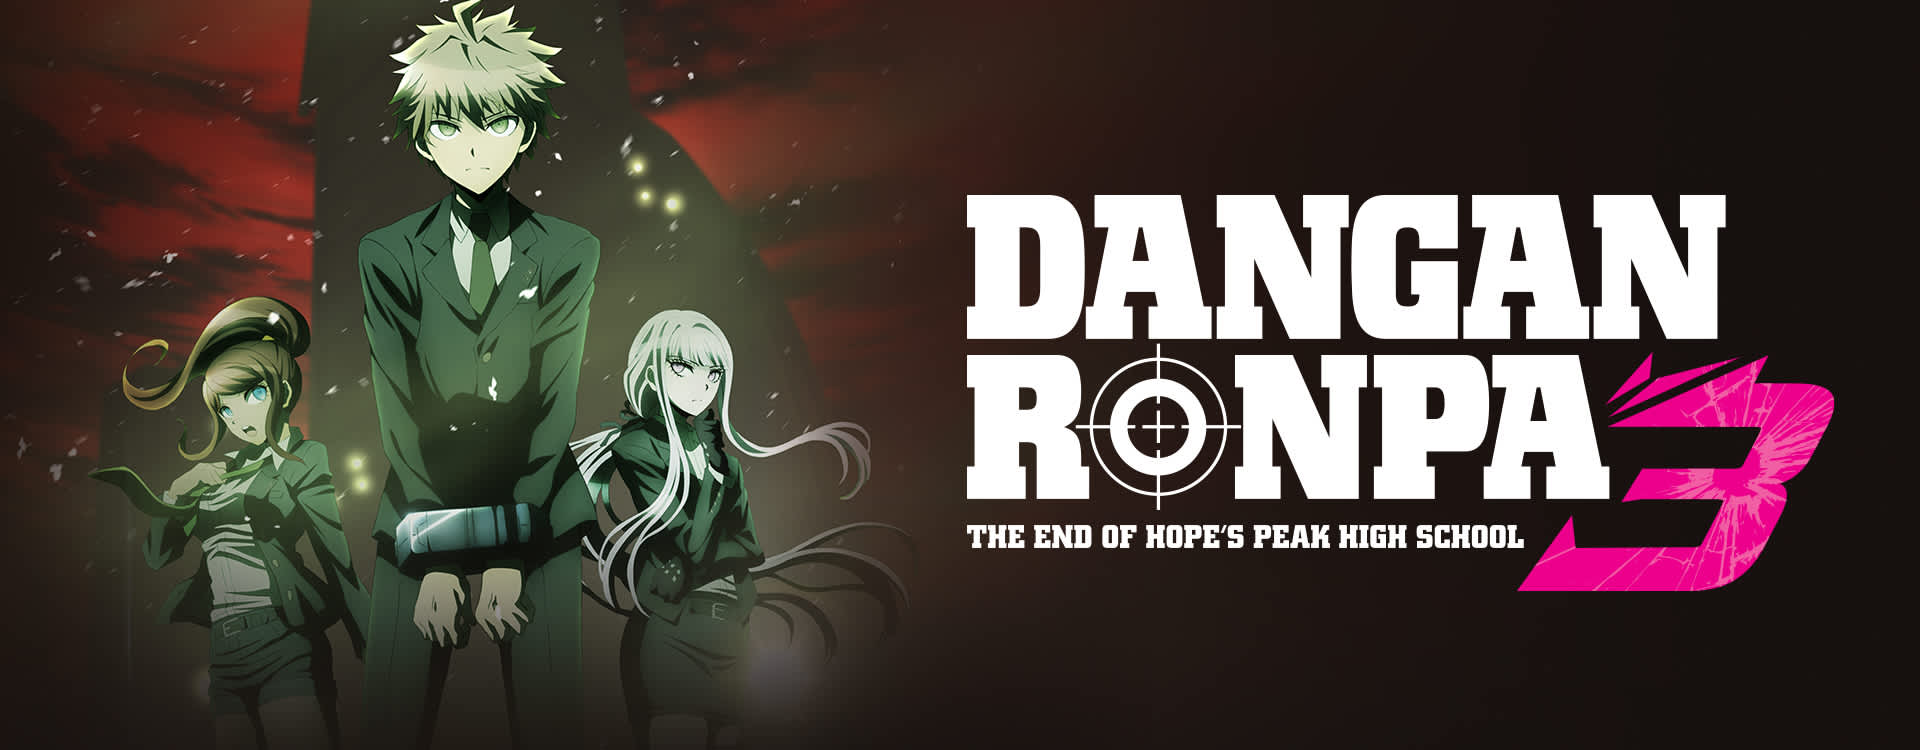 Watch Danganronpa 3: The End Of Hope'S Peak High School Episodes Sub